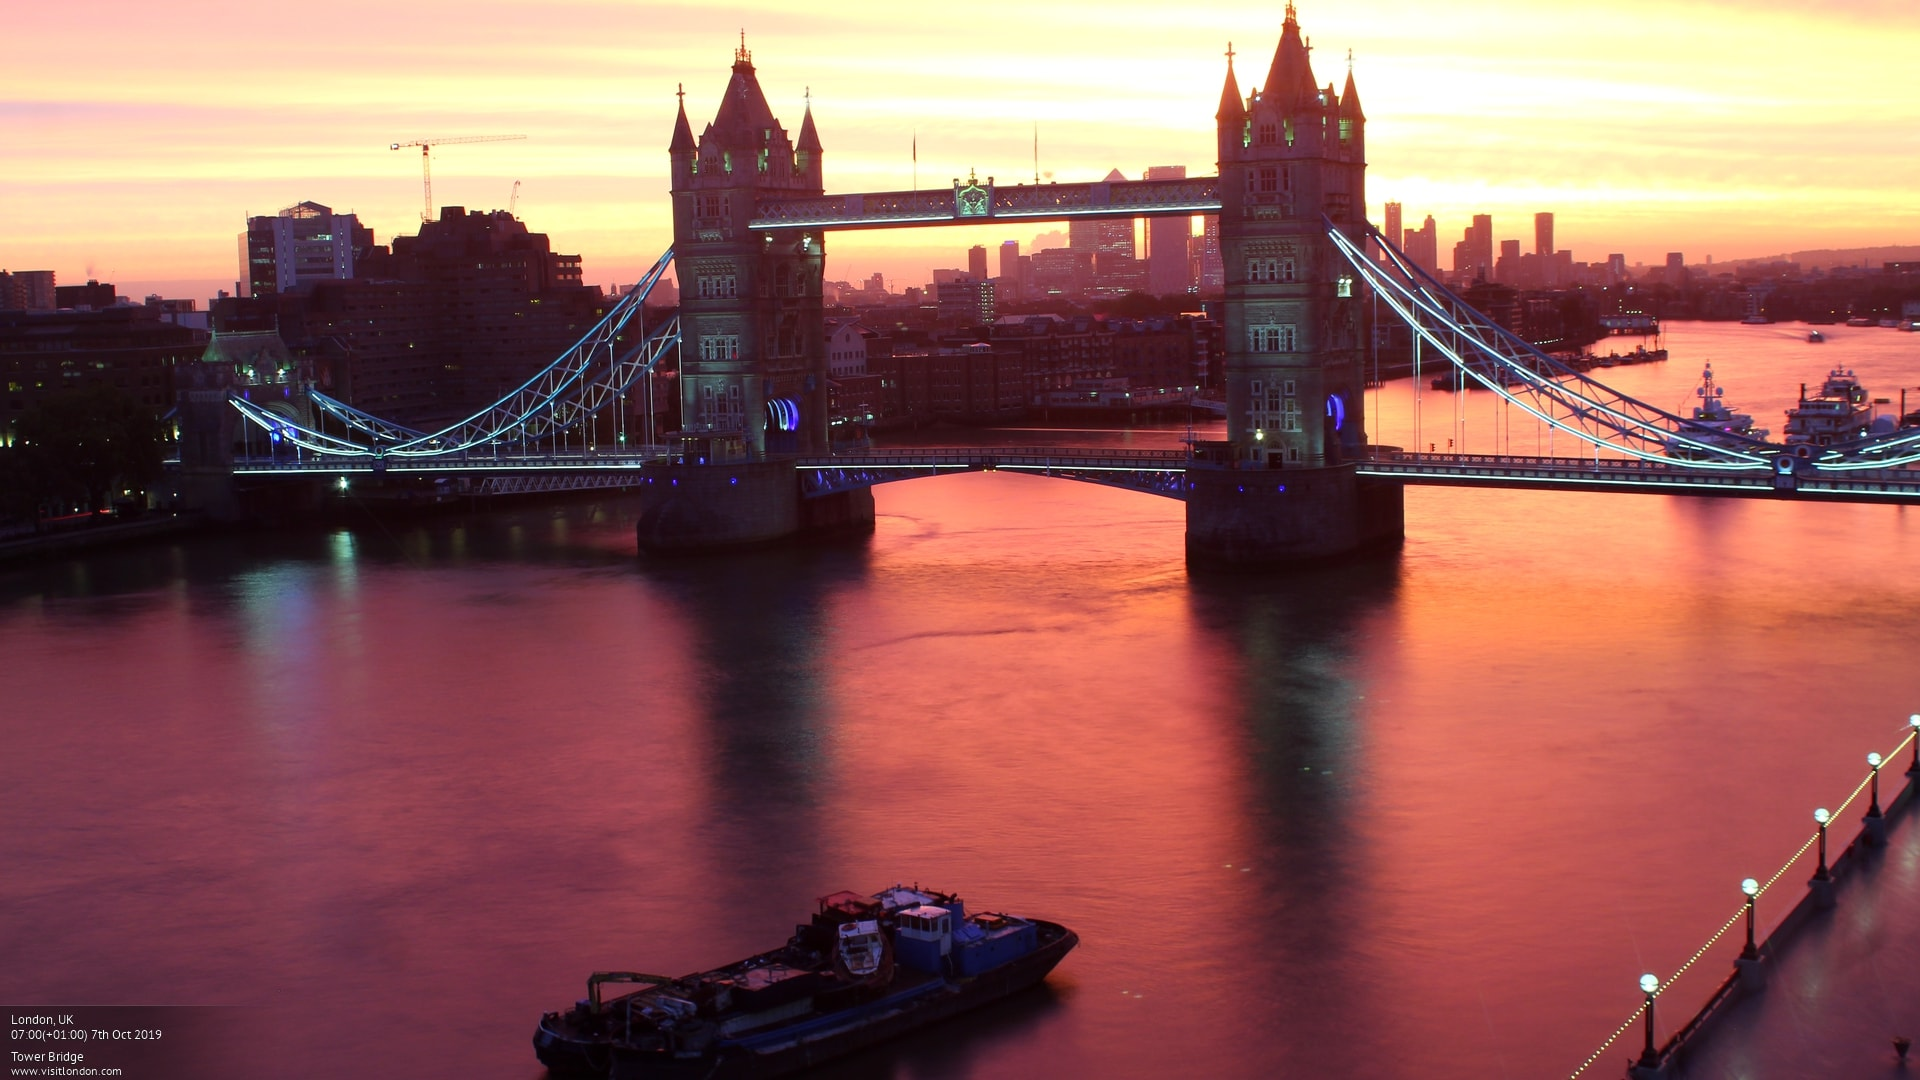 Tower Bridge in London, UK - Captured on the VisitLondon.com webcam